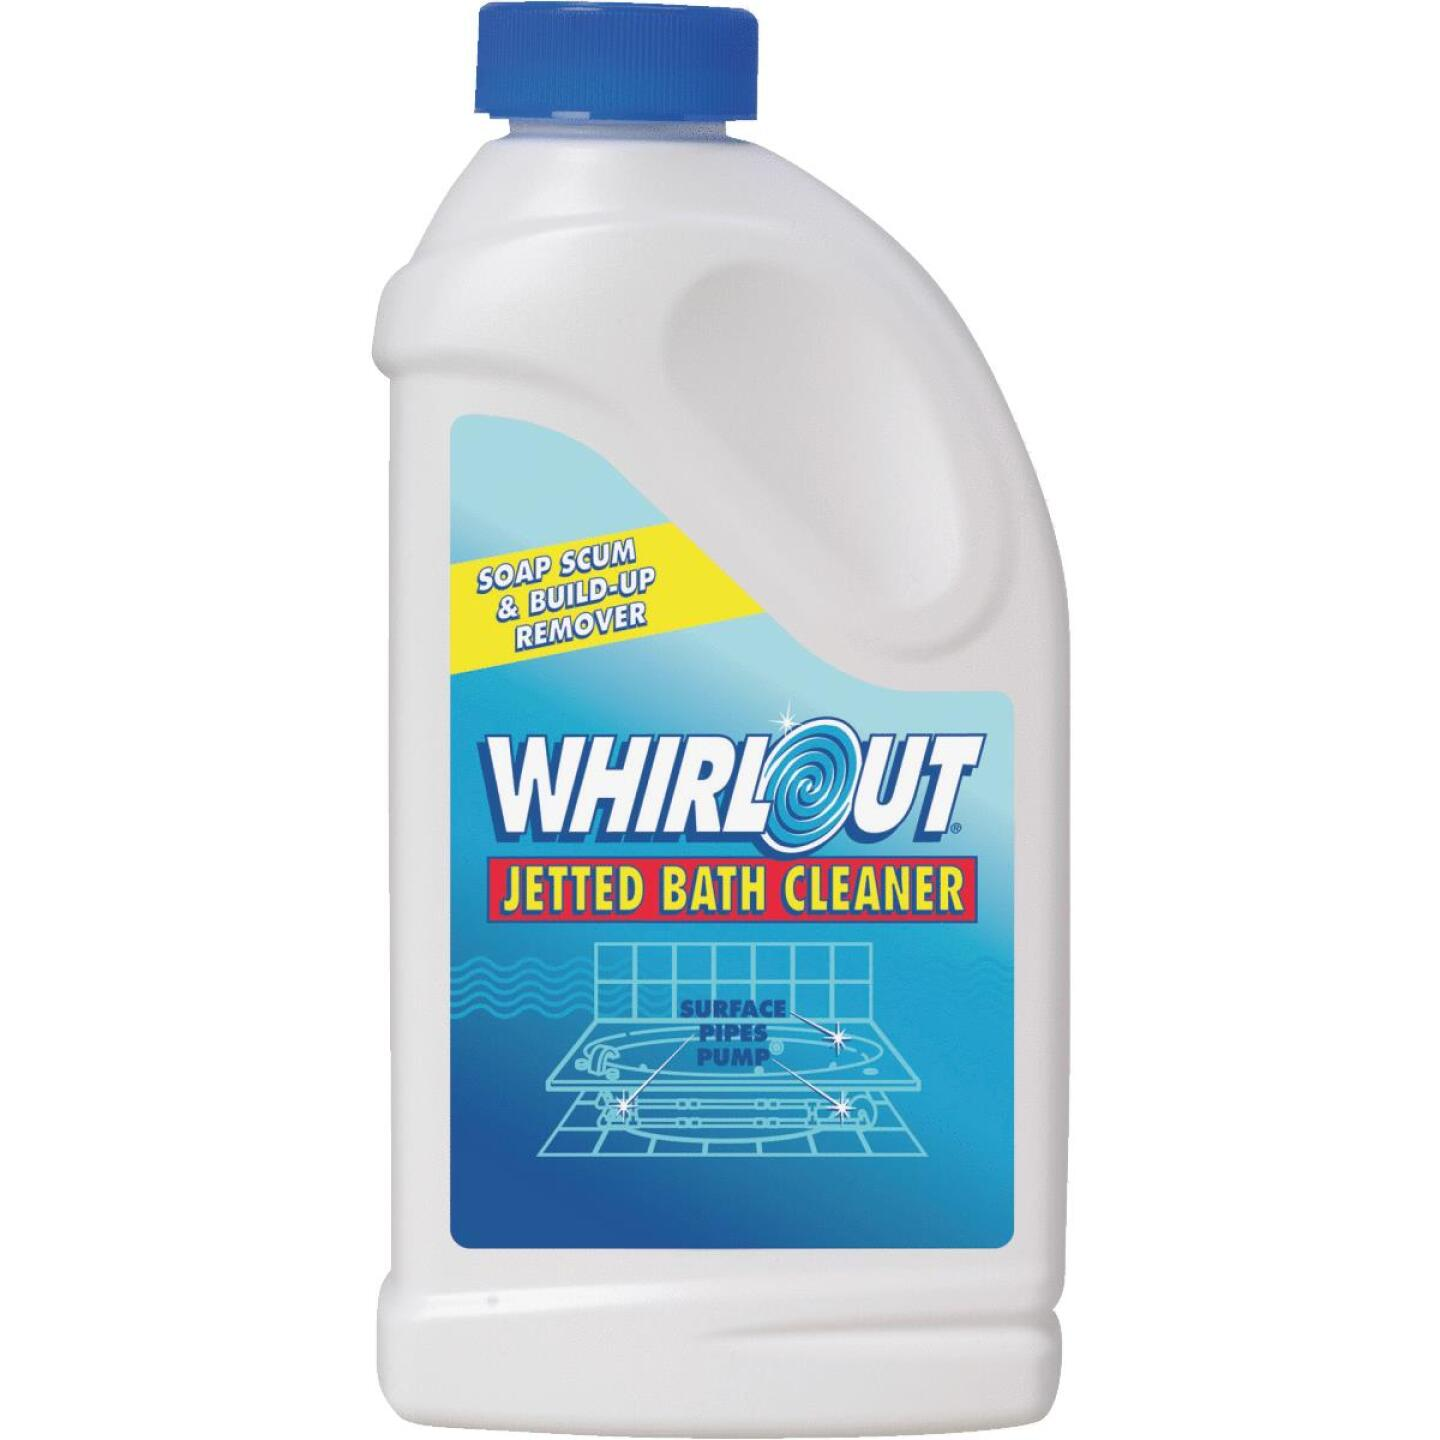 WhirlOut 22 Oz. Jetted Tub Cleaner Image 1